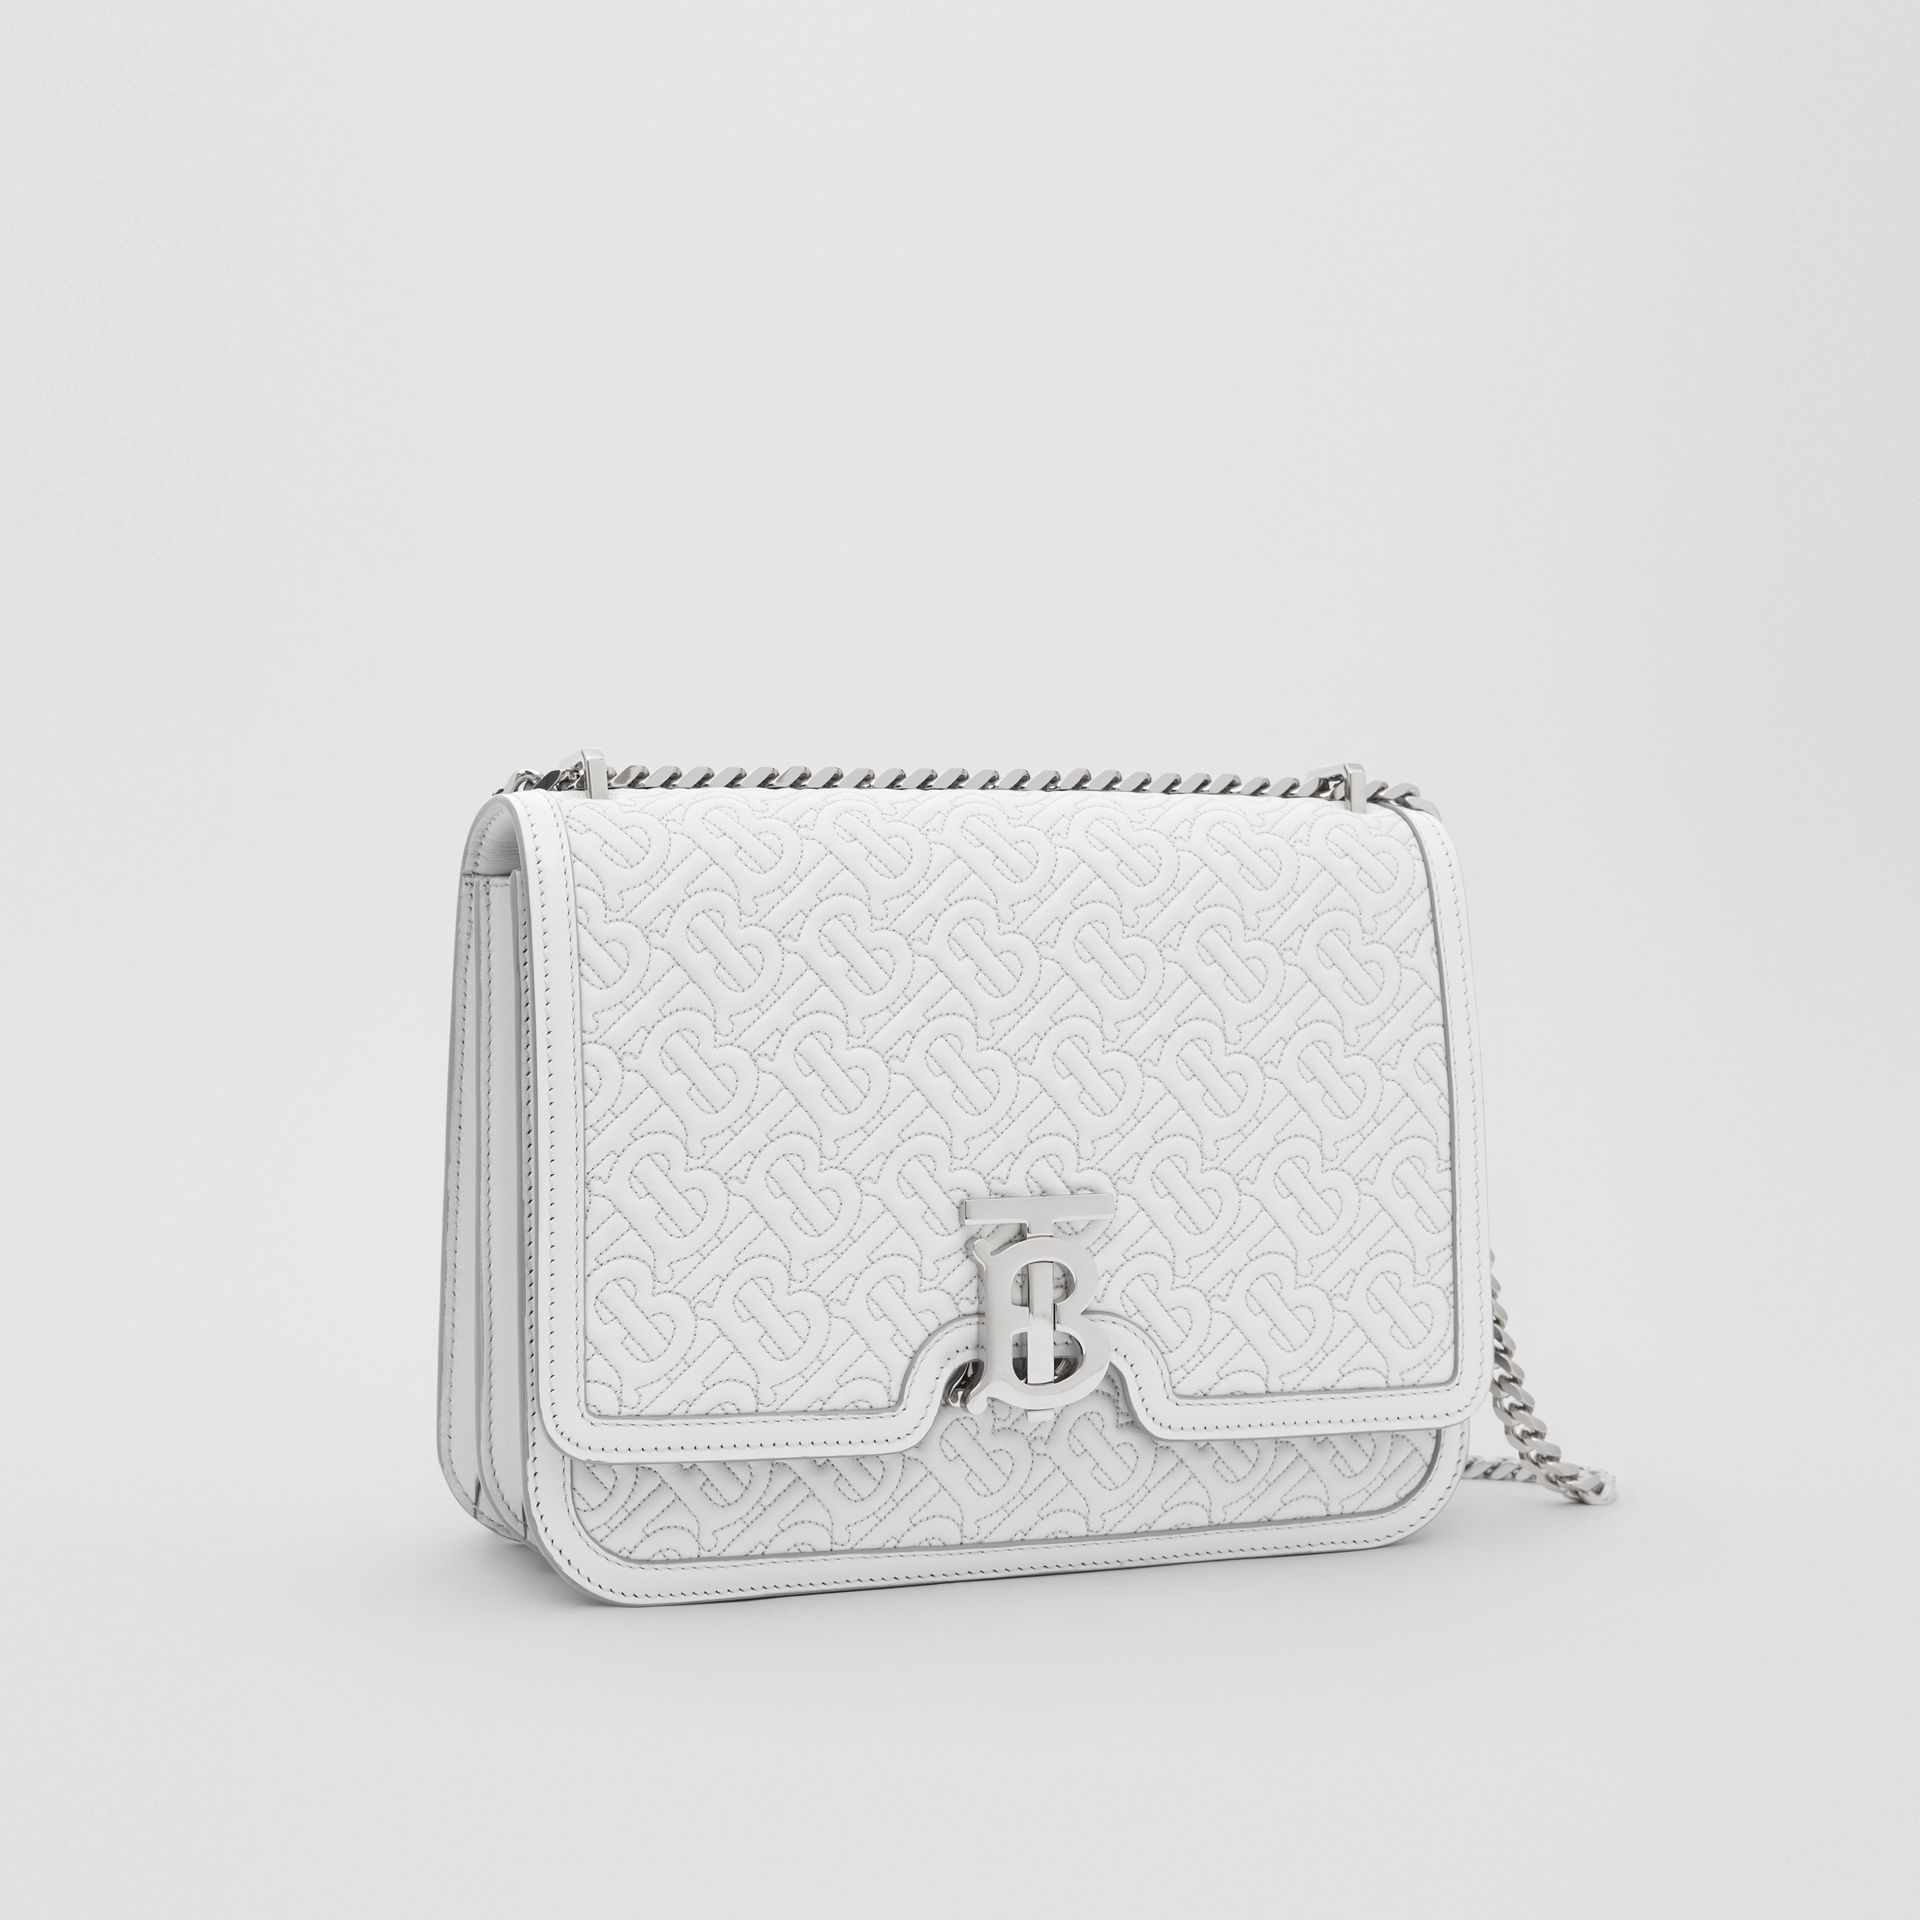 Medium Quilted Monogram Lambskin TB Bag in Light Pebble Grey - Women | Burberry Australia - gallery image 6